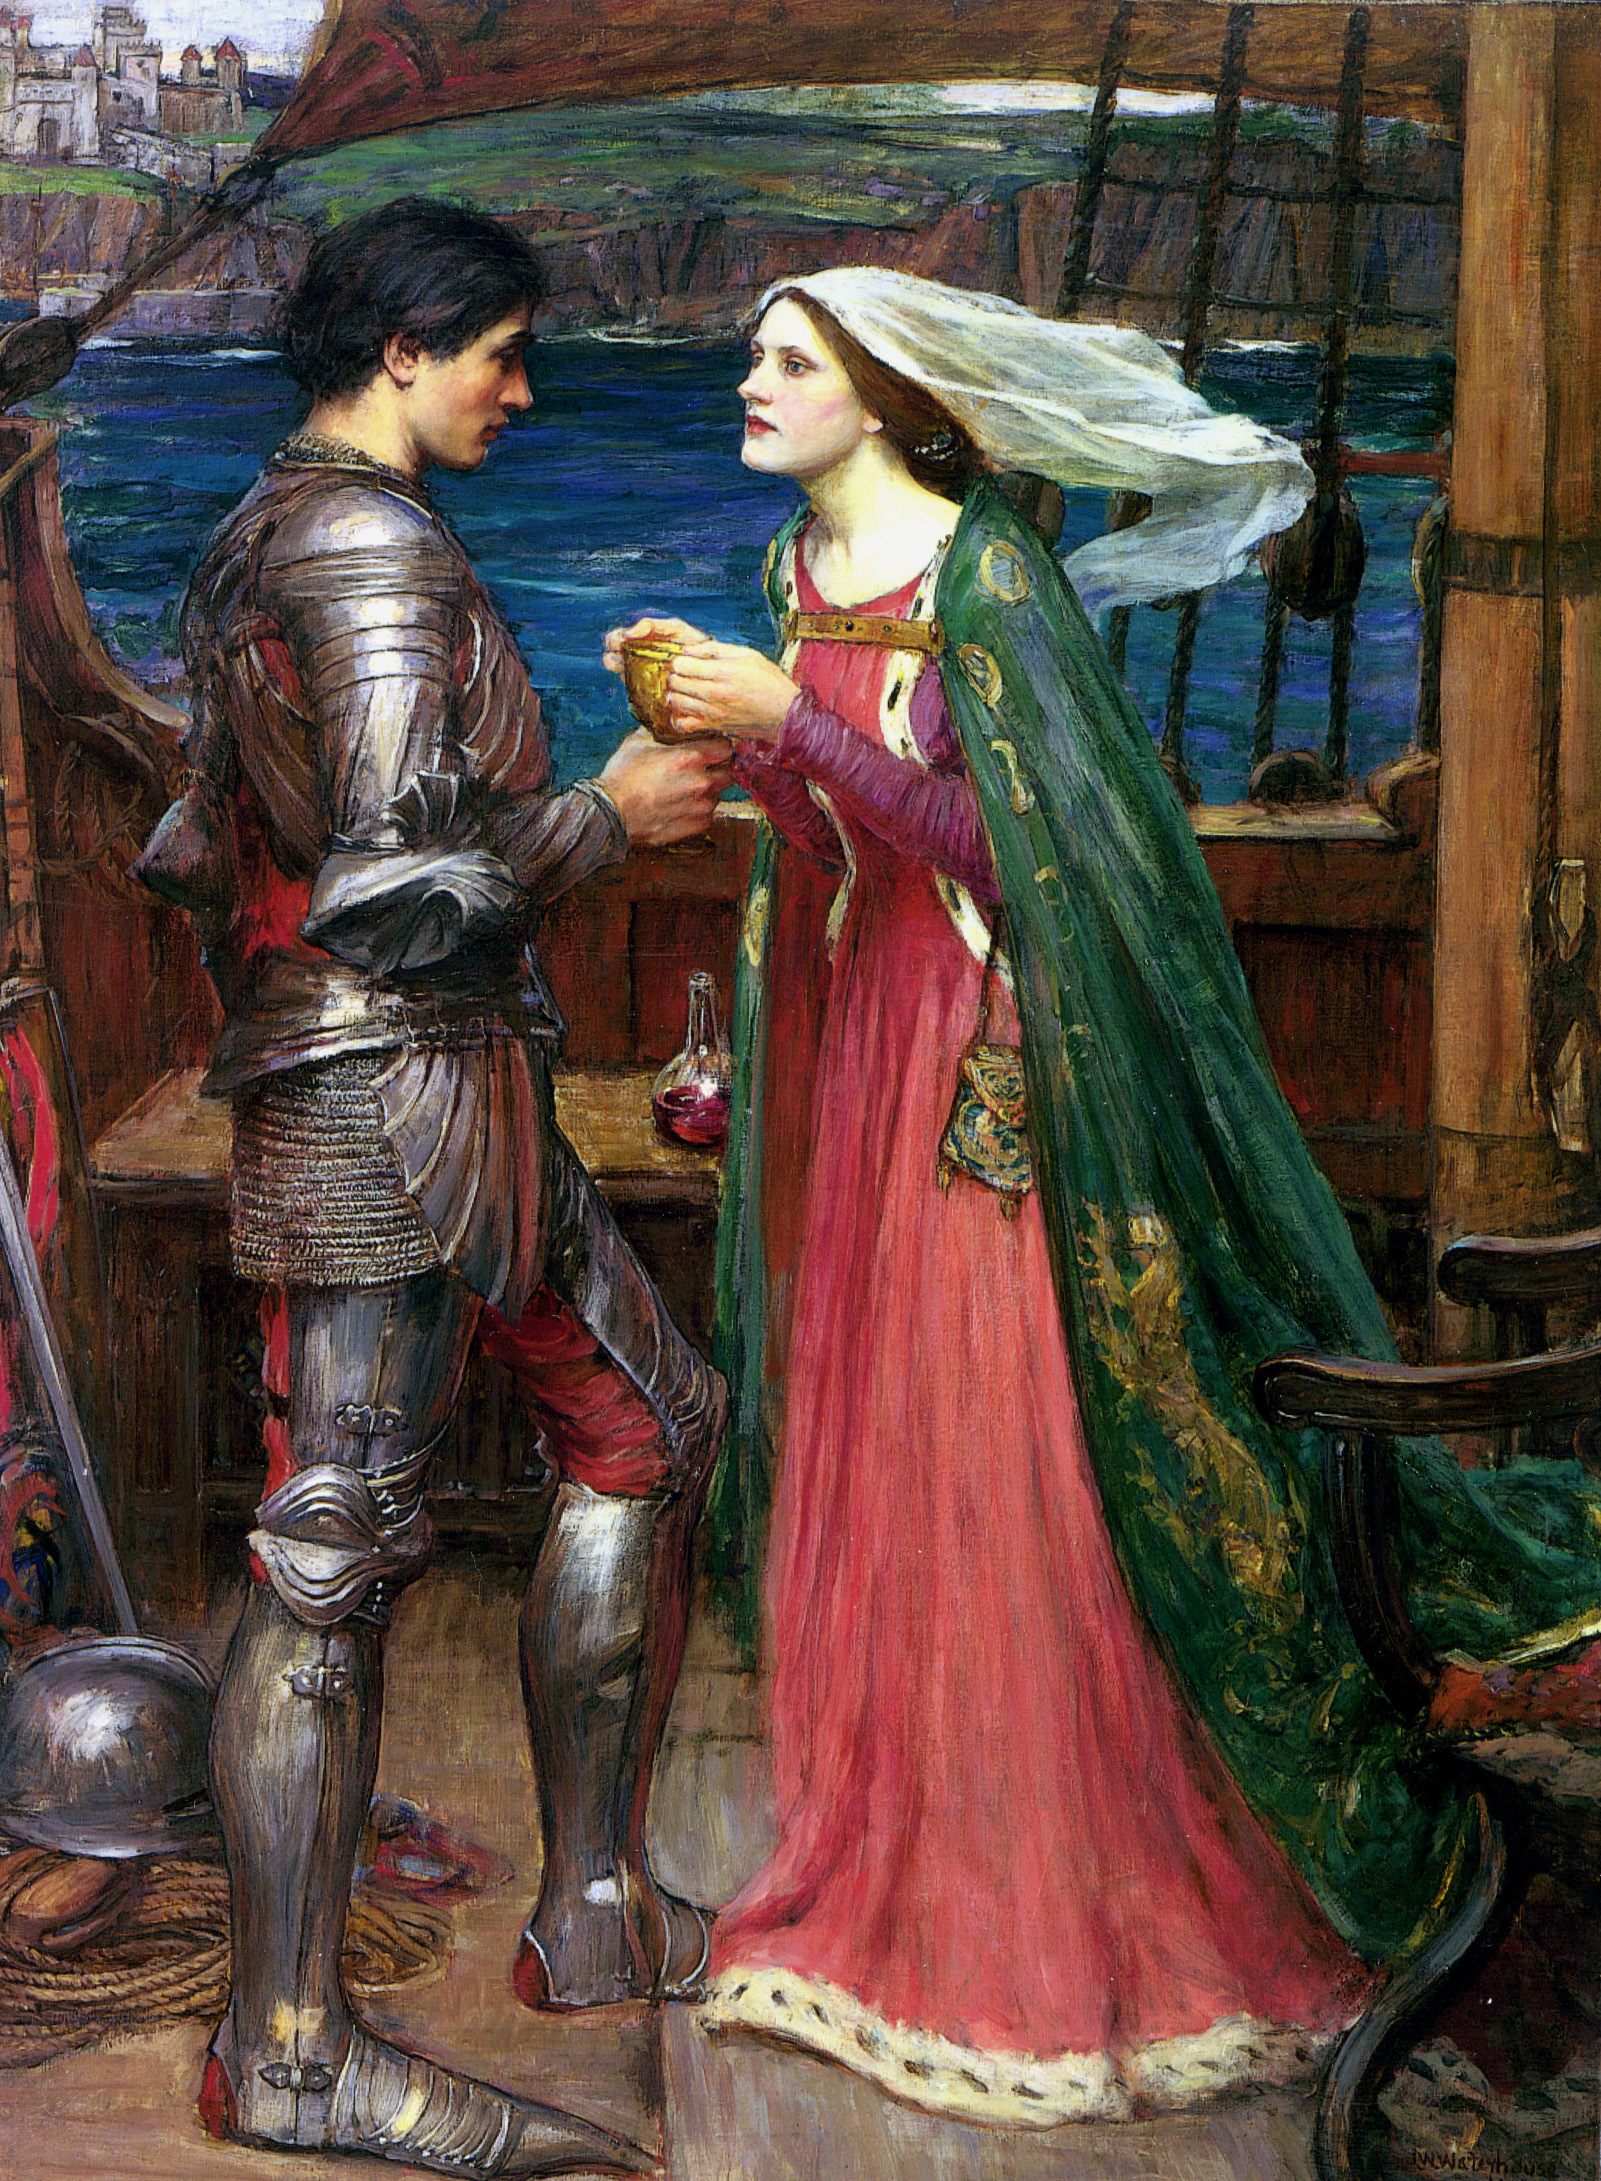 http://upload.wikimedia.org/wikipedia/commons/1/13/John_william_waterhouse_tristan_and_isolde_with_the_potion.jpg